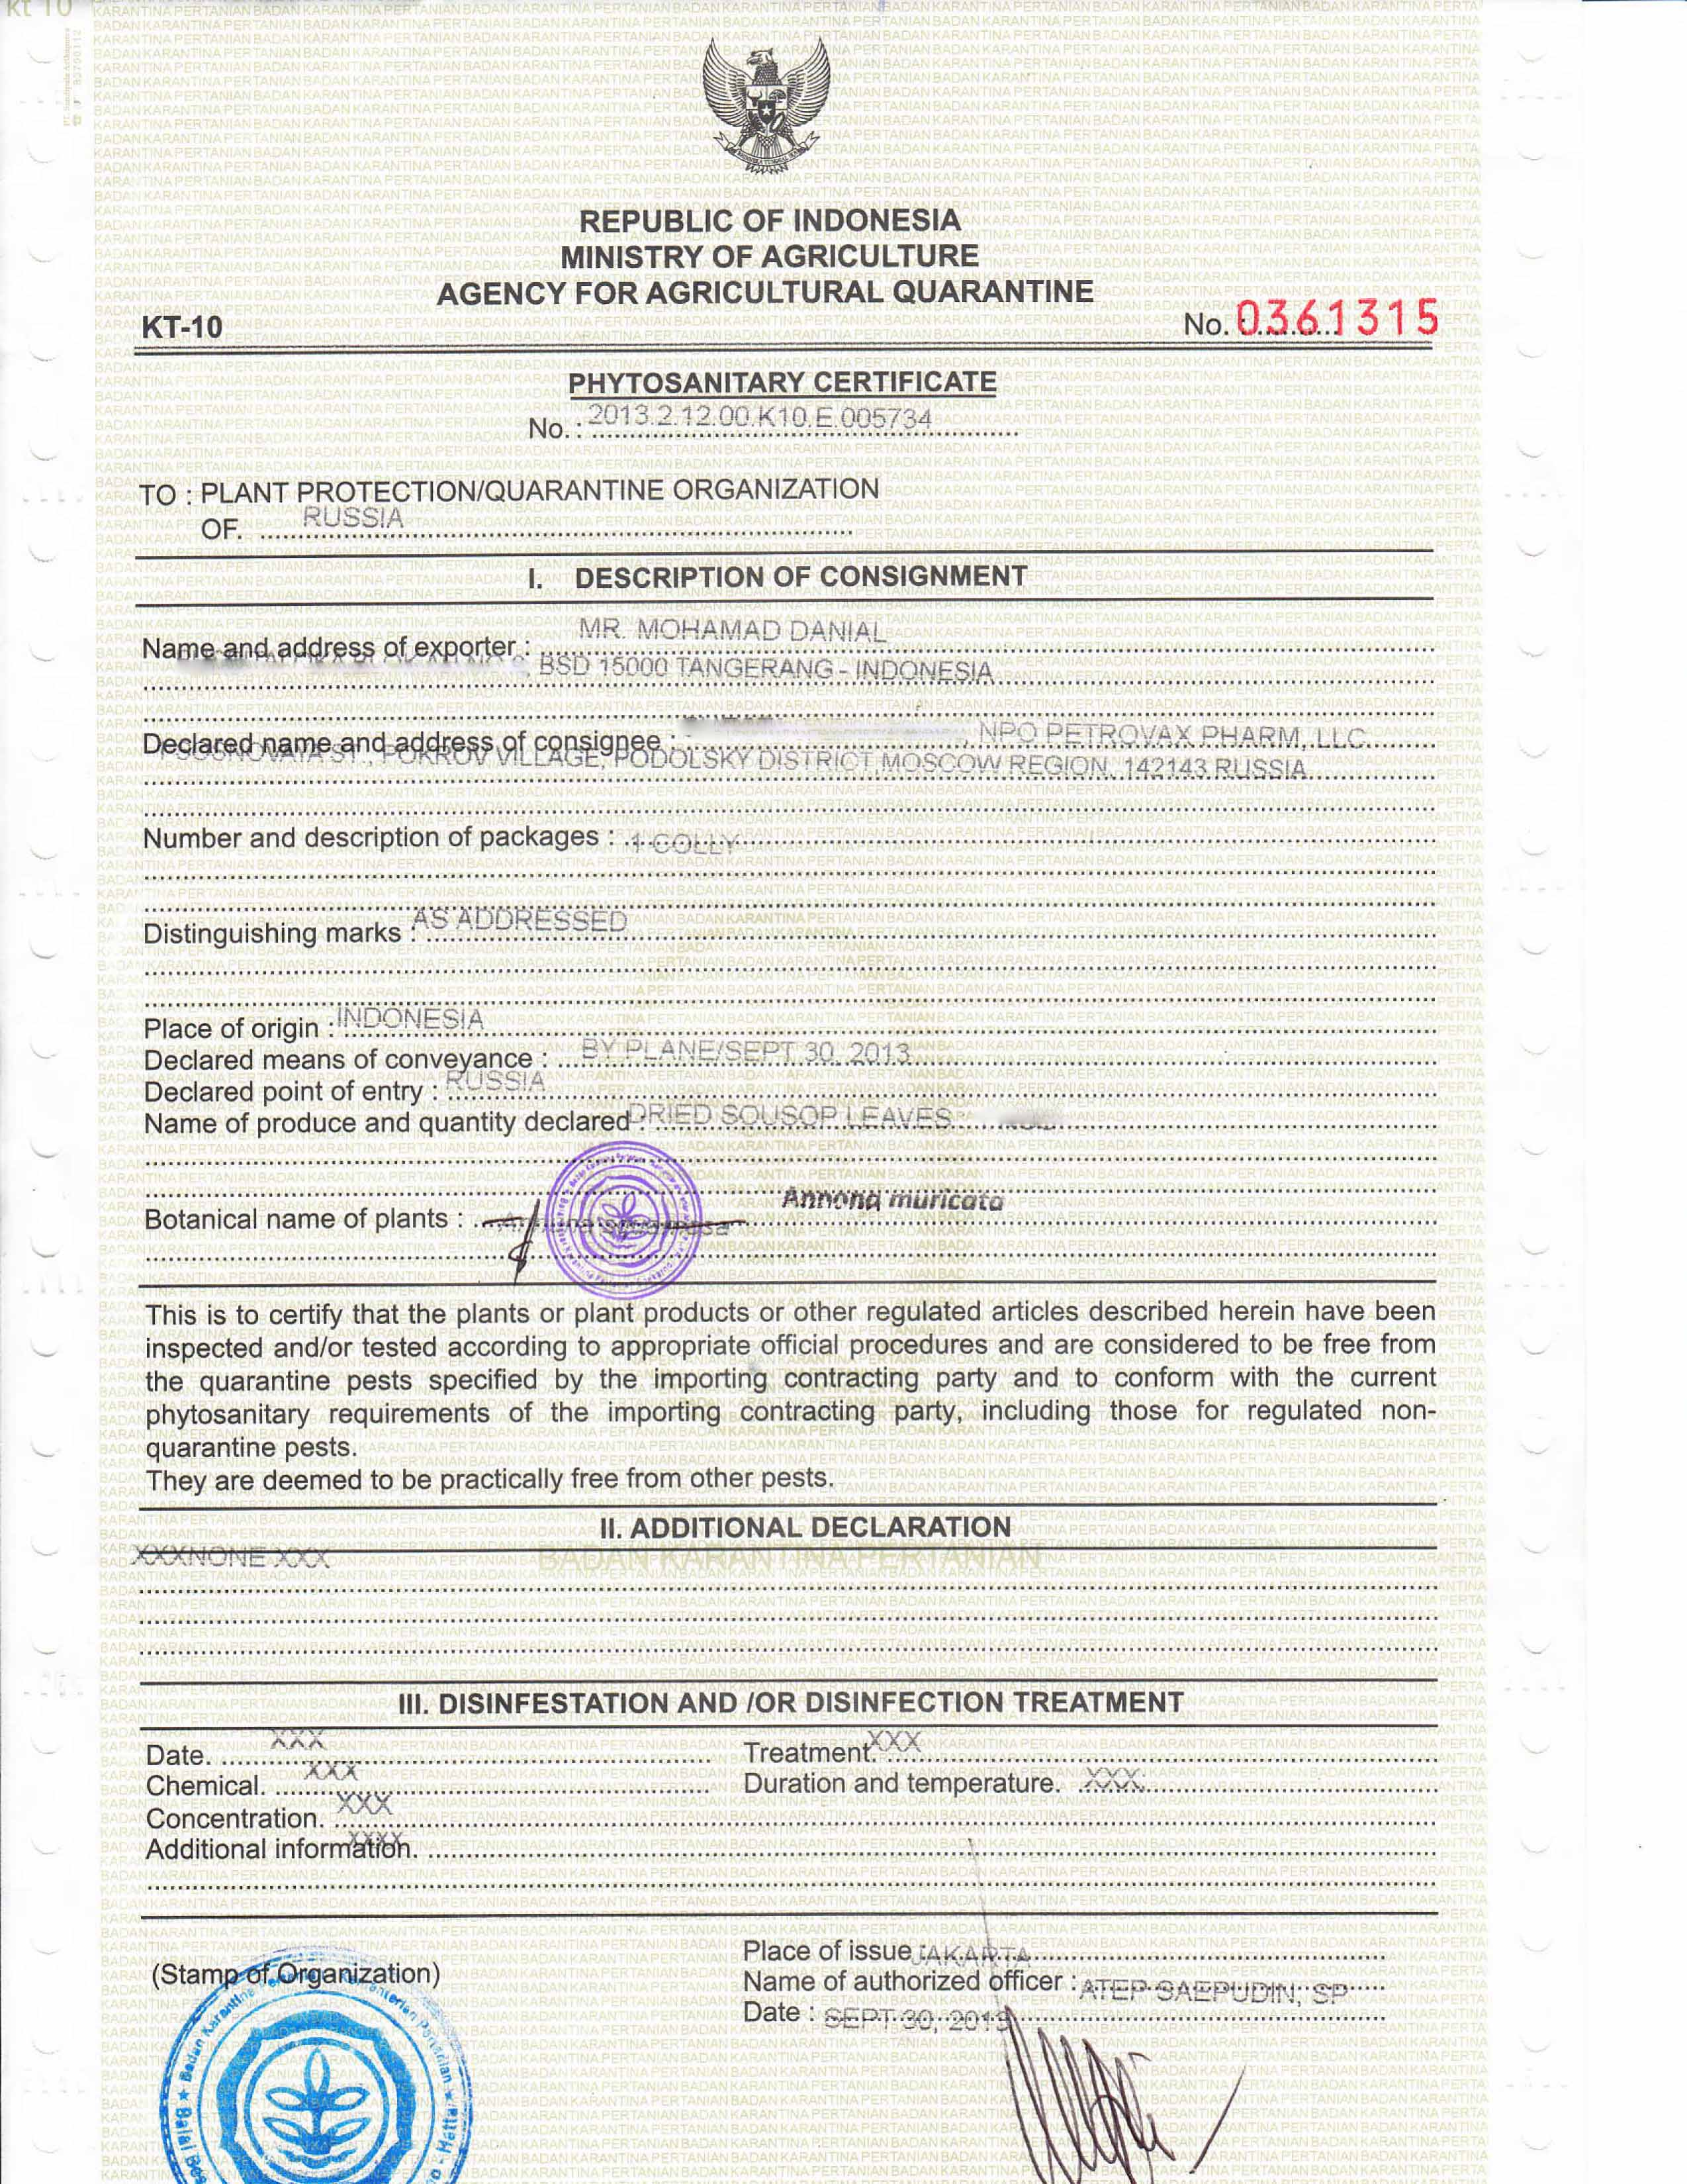 Phytosanitary Certificate From The Ministry Of Agriculture Of